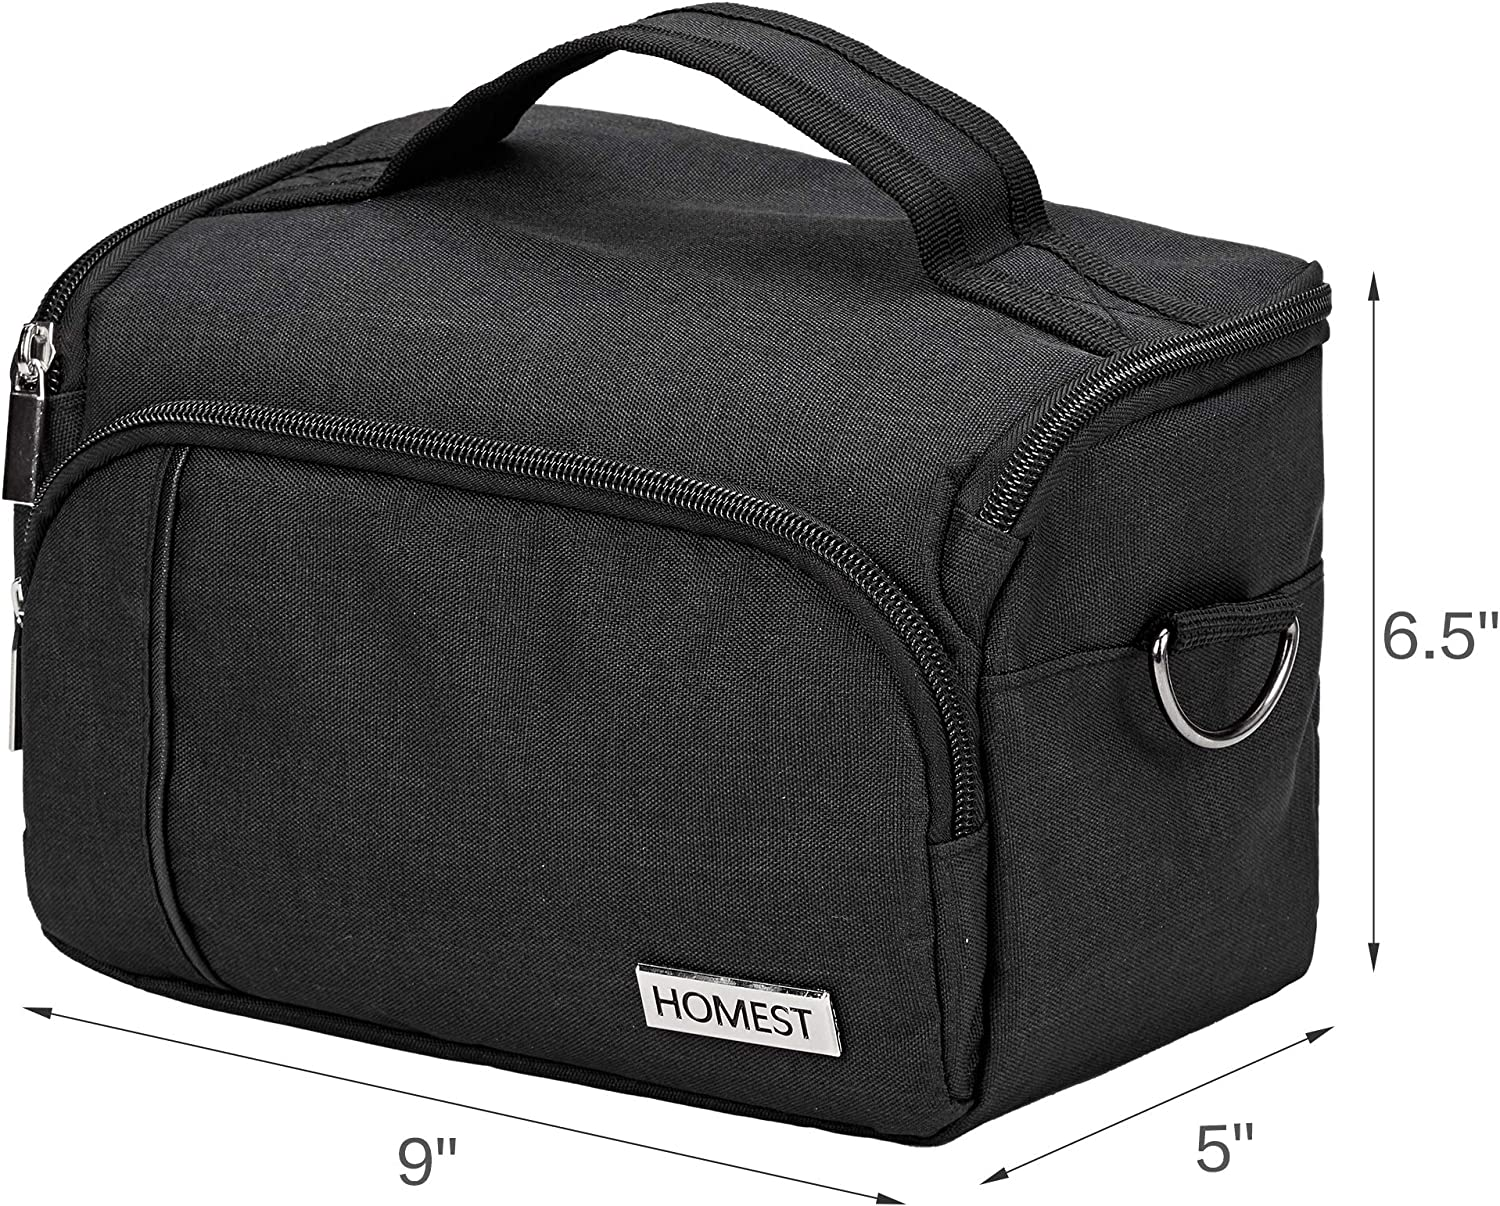 HOMEST Carrying Case Compatible with Circut Easy Press Mini Black Tote Bag for Cricut Heat Press Machine Bag Only Enough Capacity for Mats Pens and Tools